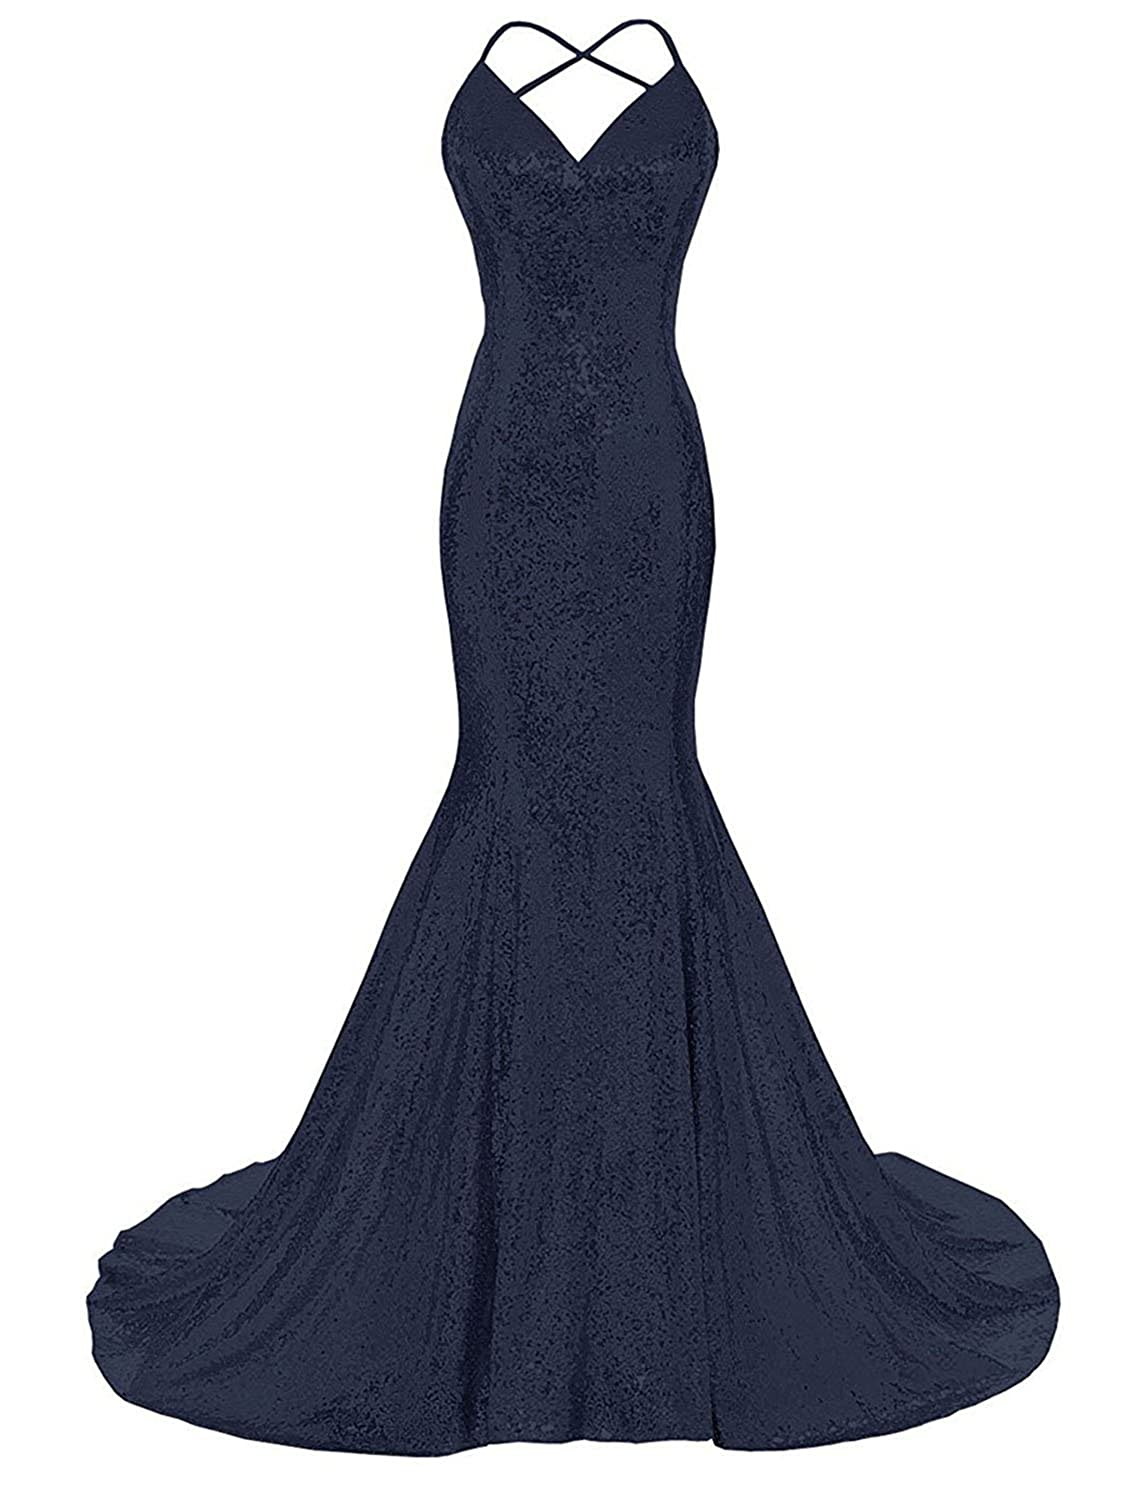 Navy bluee Monalia Women's 2018 Formal Evening Dresses Sequined Mermaid Prom Gowns EV4